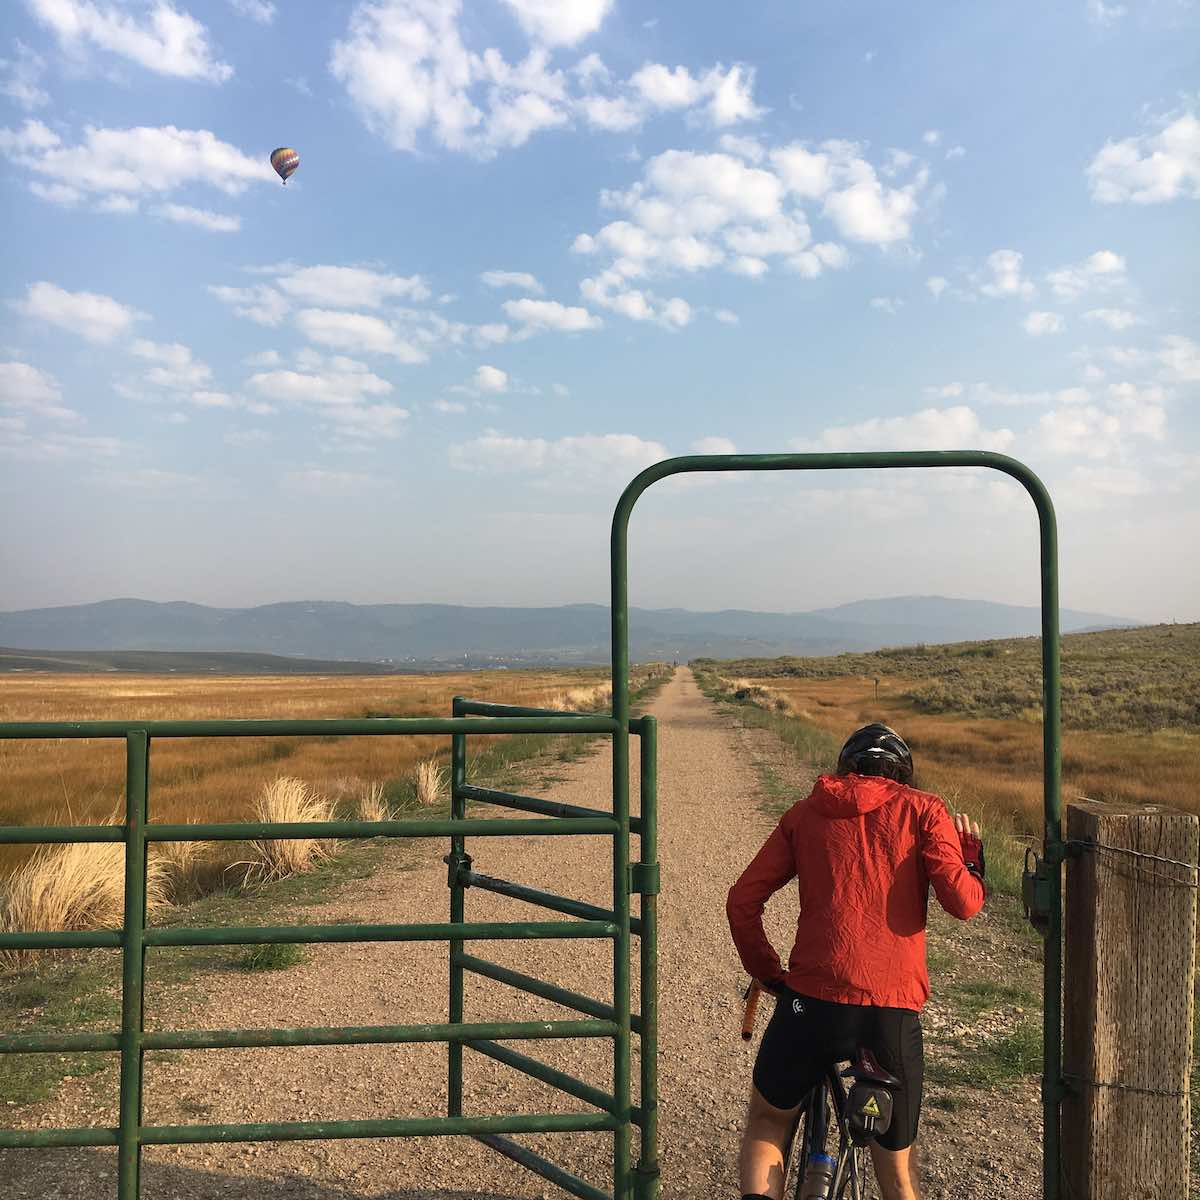 bikerumor pic of the day a cyclist passes through a livestock gate to access a gravel road that runs straight as far as the eye can see, there are a smattering of fluffy clouds in the sky as well as a hot air balloon in the distance.